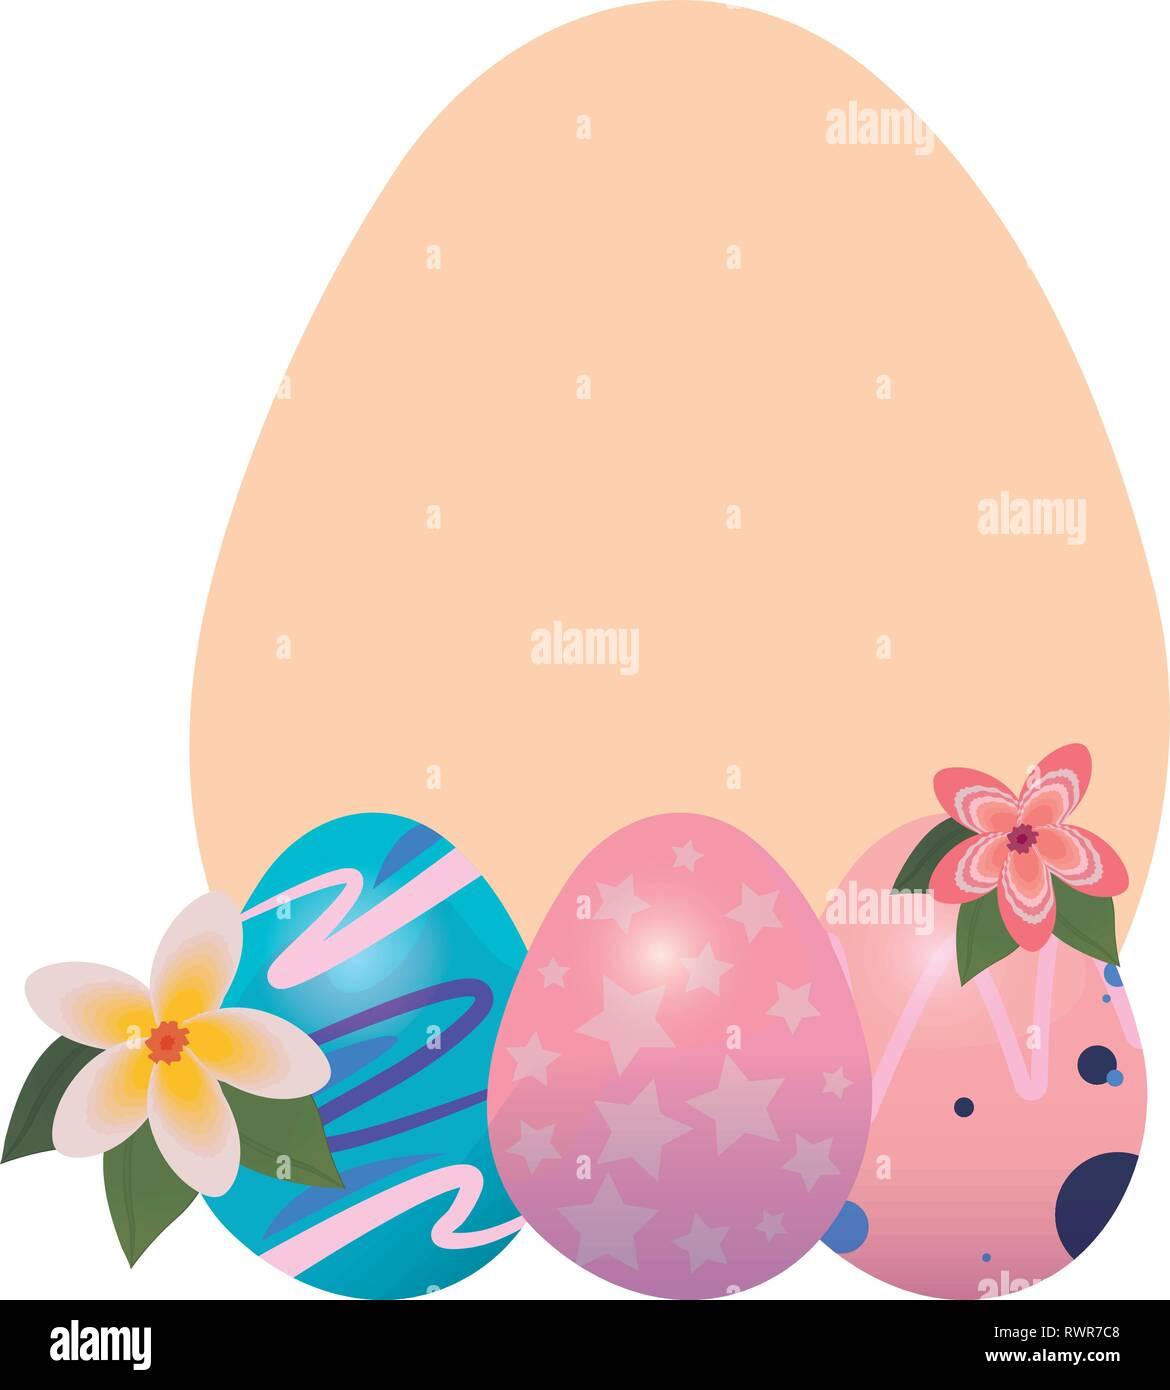 egg decorating badge template happy easter vector illustration - Stock Vector